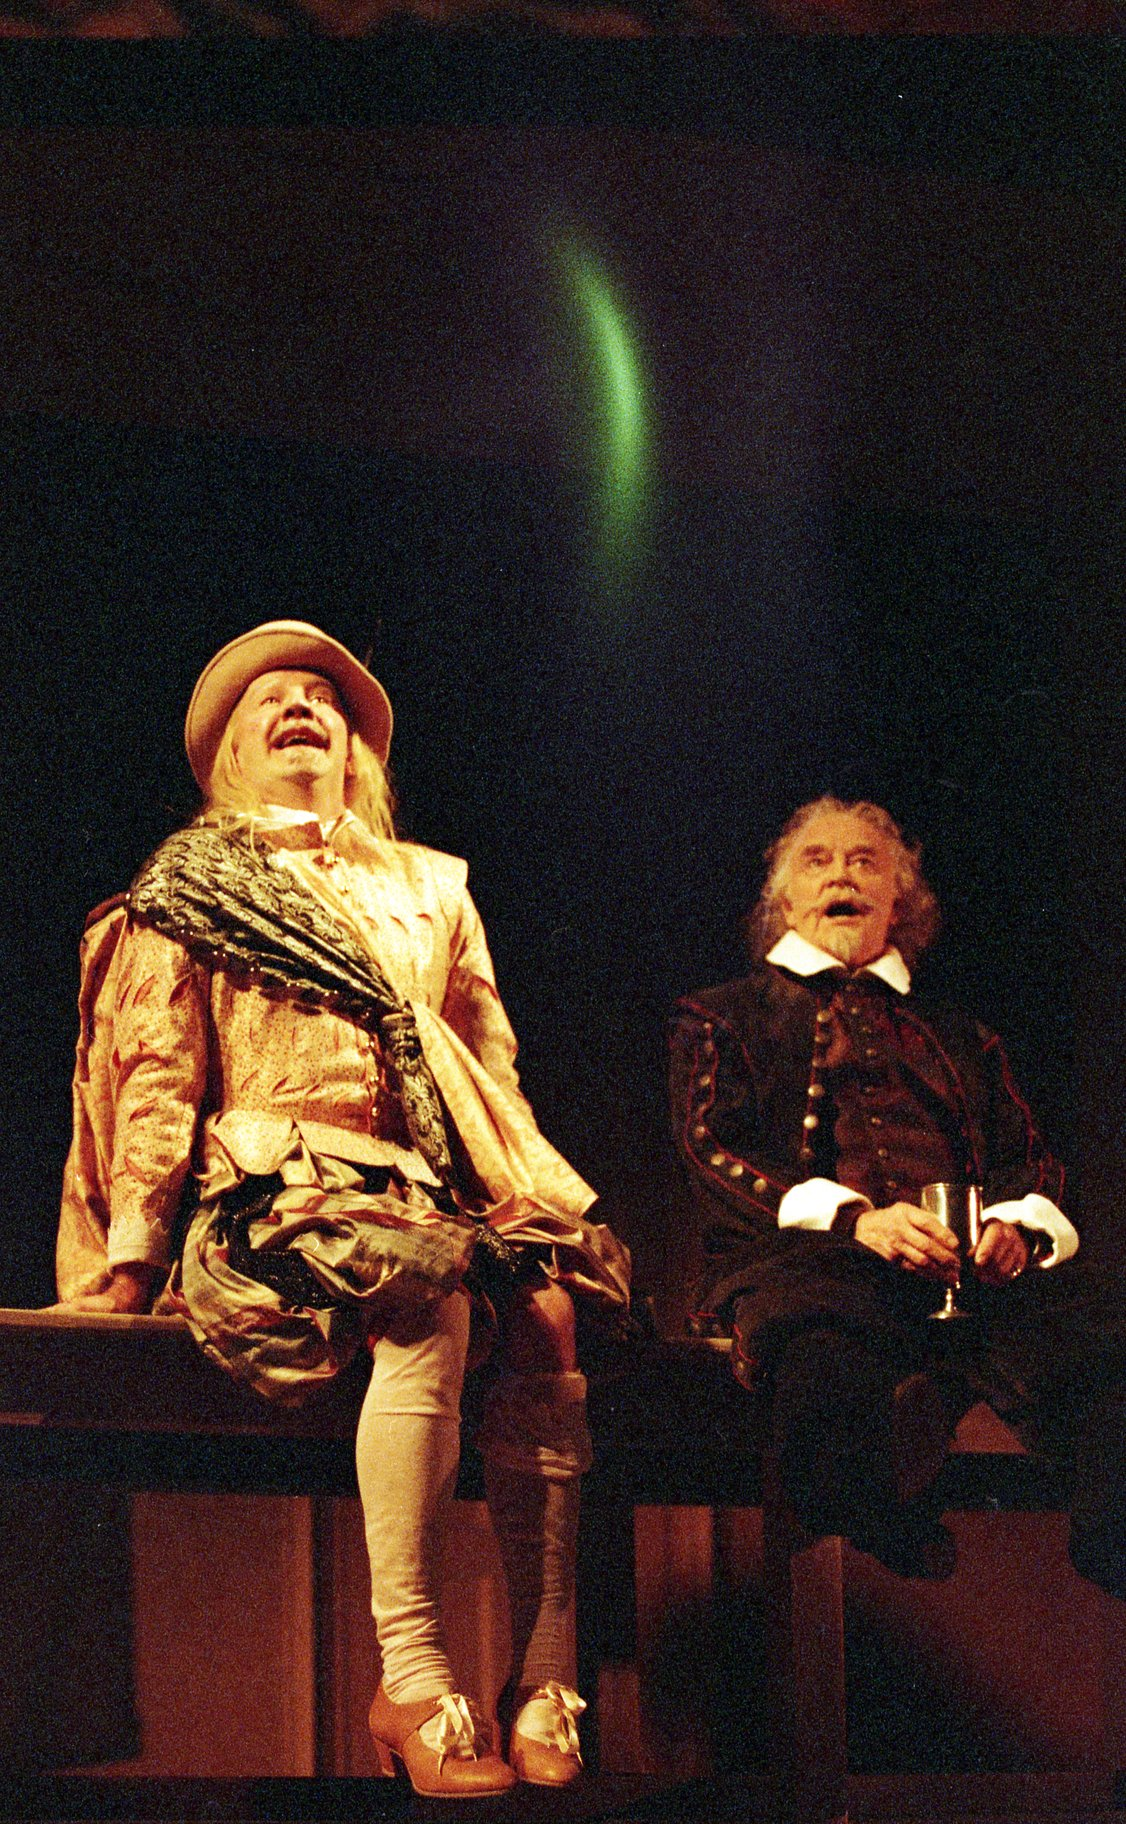 Sir Andrew (right) and Sir Toby (left) sitting looking upwards